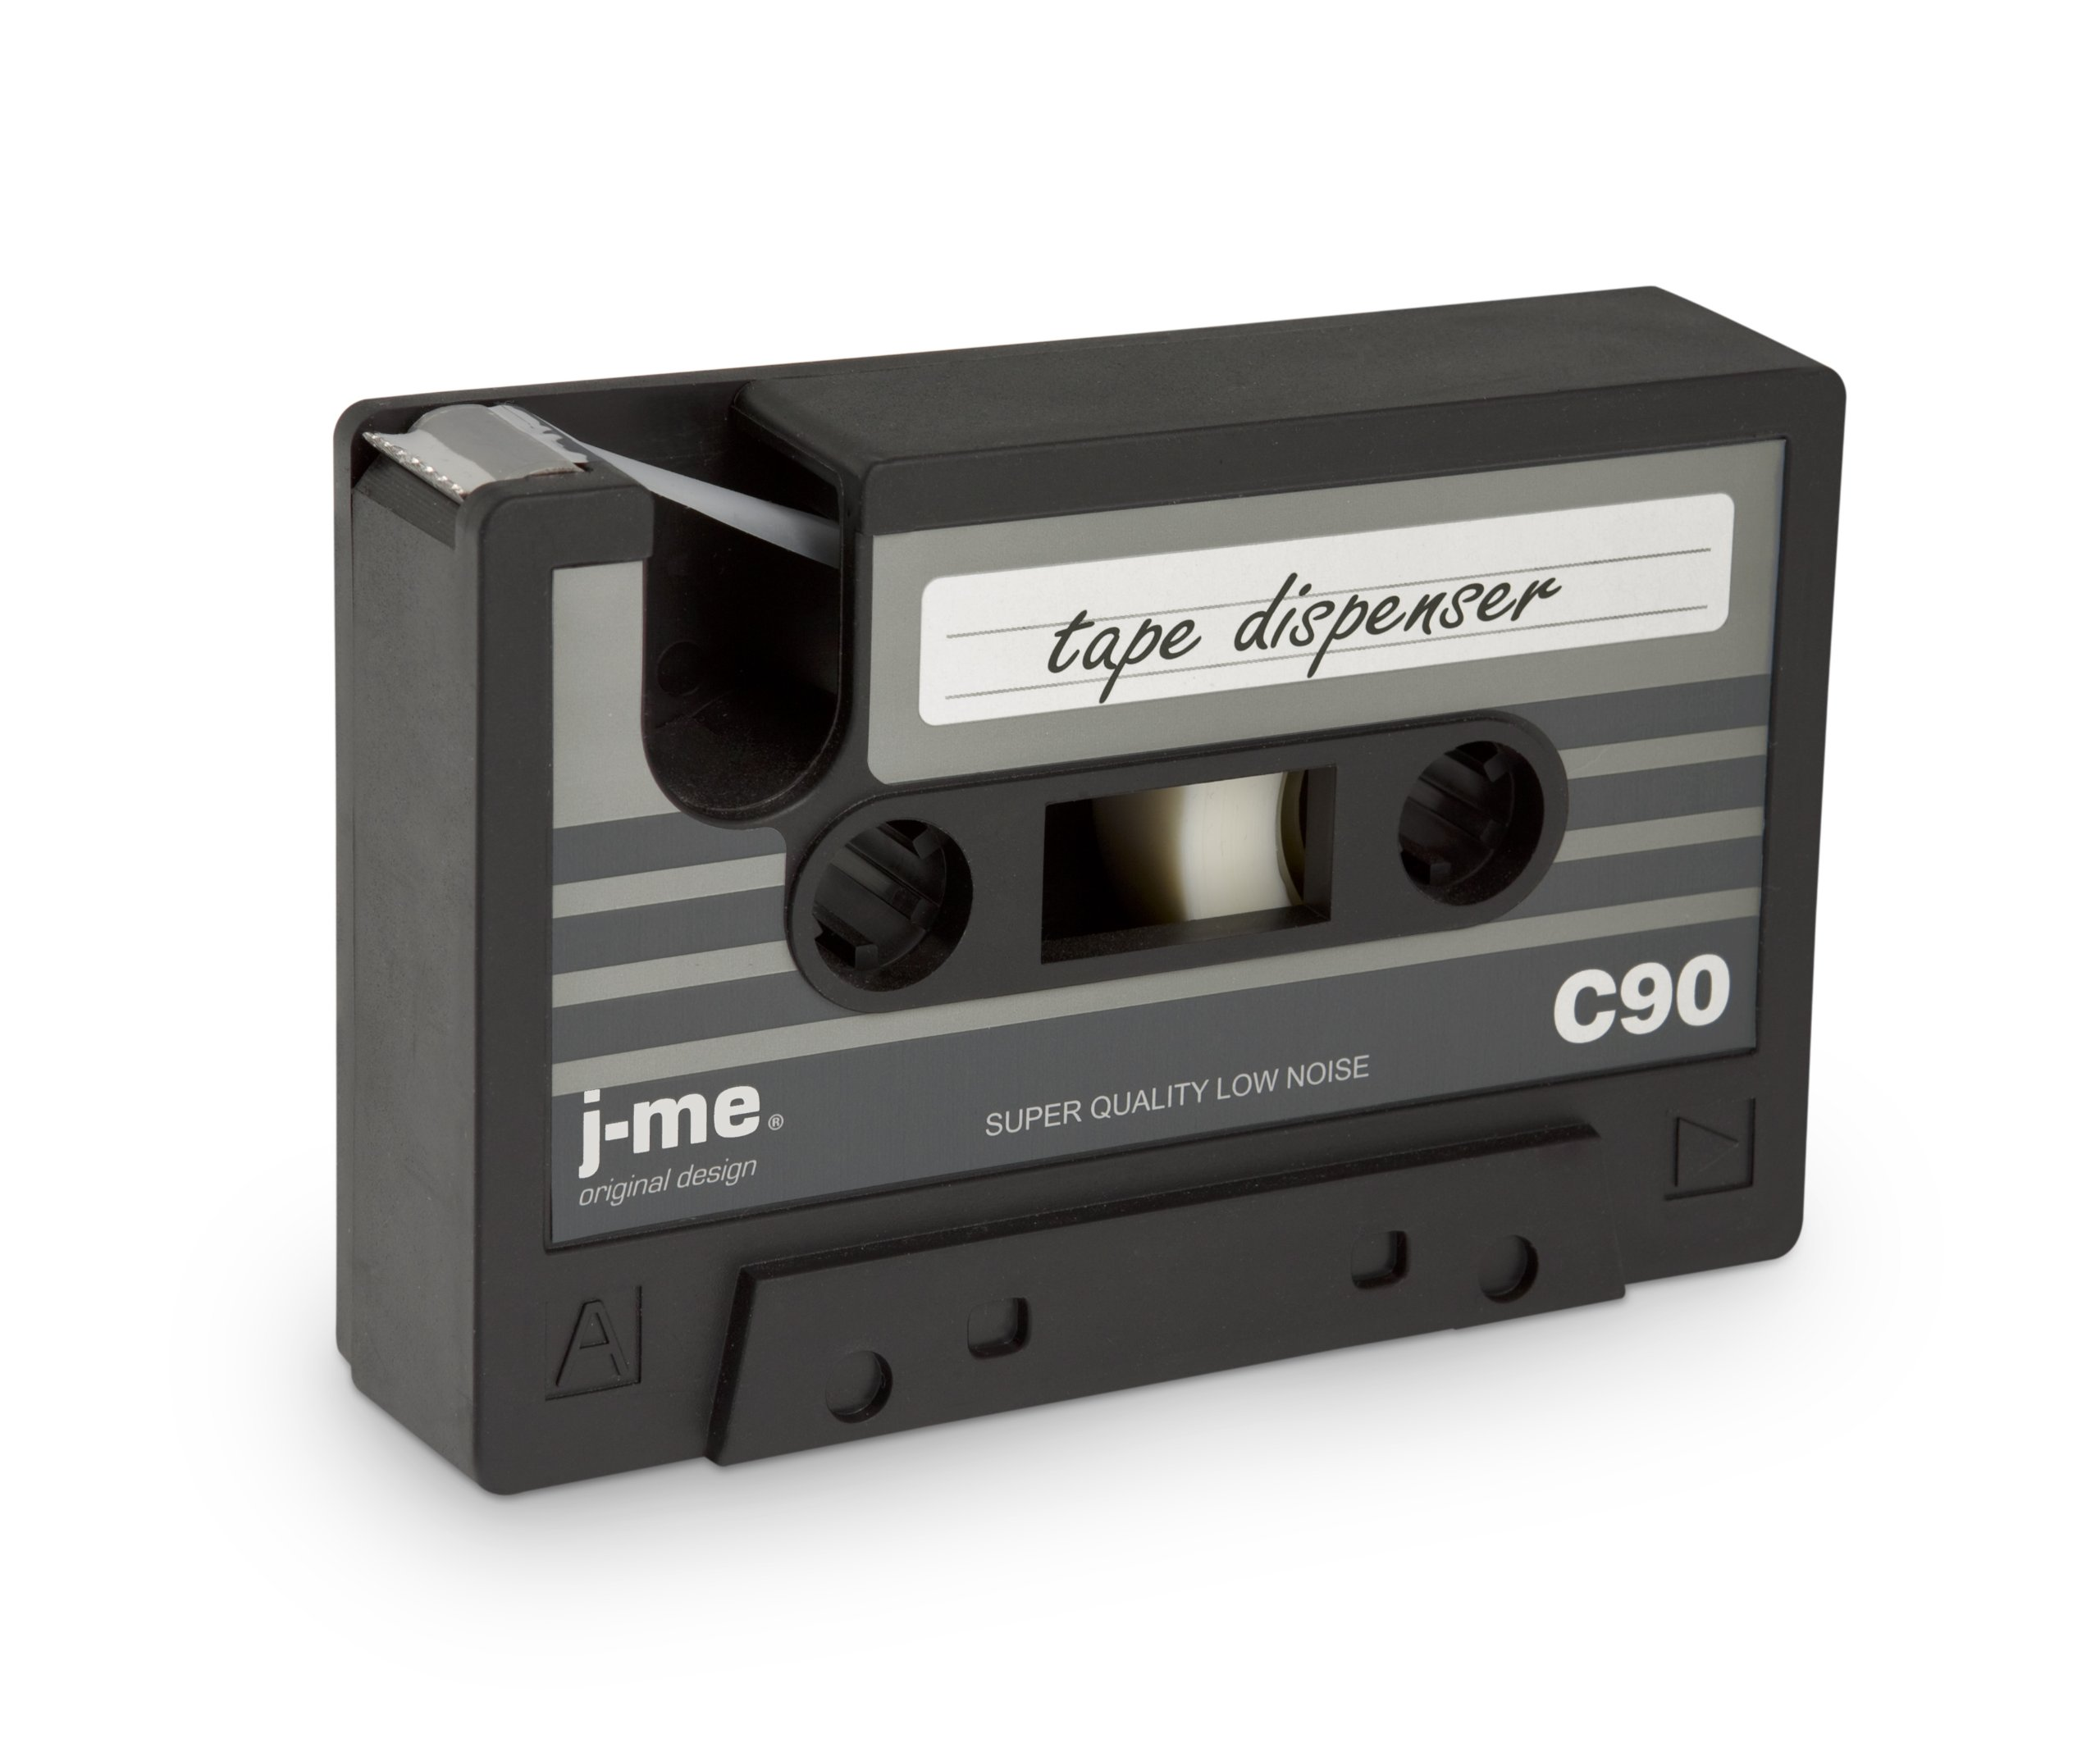 j-me Cassette Tape Dispenser - Black. an Ideal Stationery Accessory for The Home or Office Desk | Compatible with Scotch Tape & 3M Tape by j-me